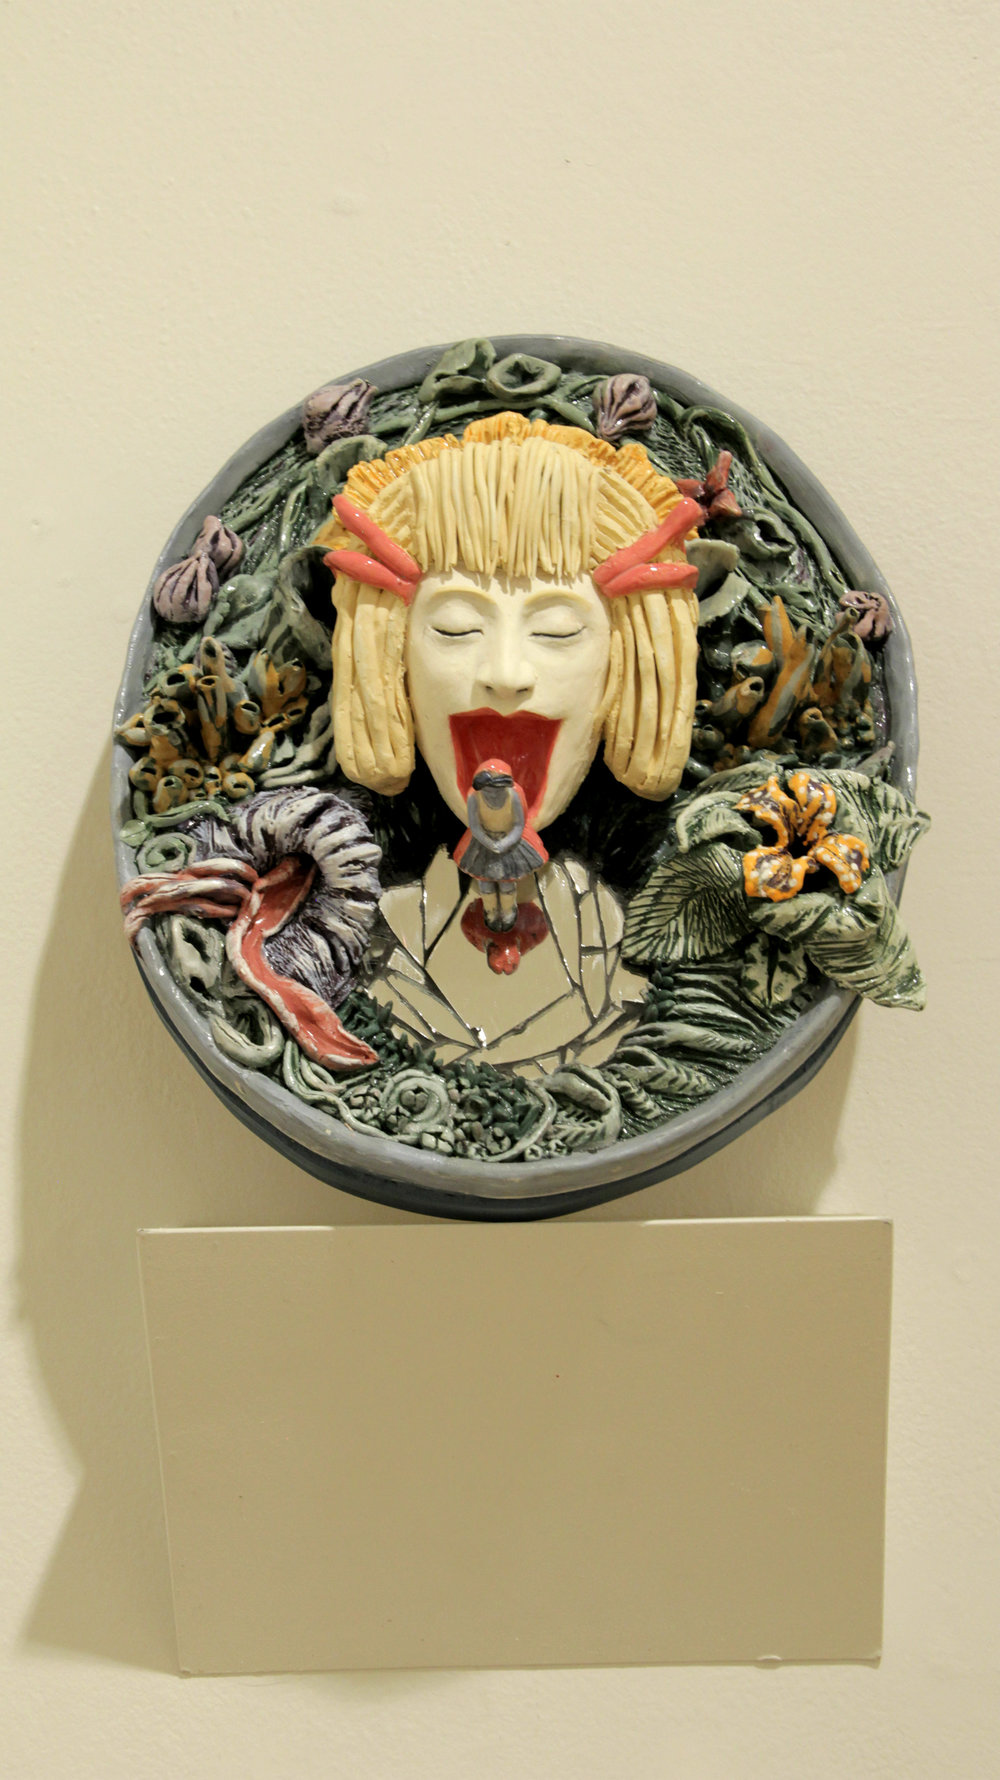 """""""Discovering the Deepest Mirror"""" Clay, Underglaze, Glaze, mirror H 15 1/2 in W 12 3/4in D 5 1/2 in, 2018"""